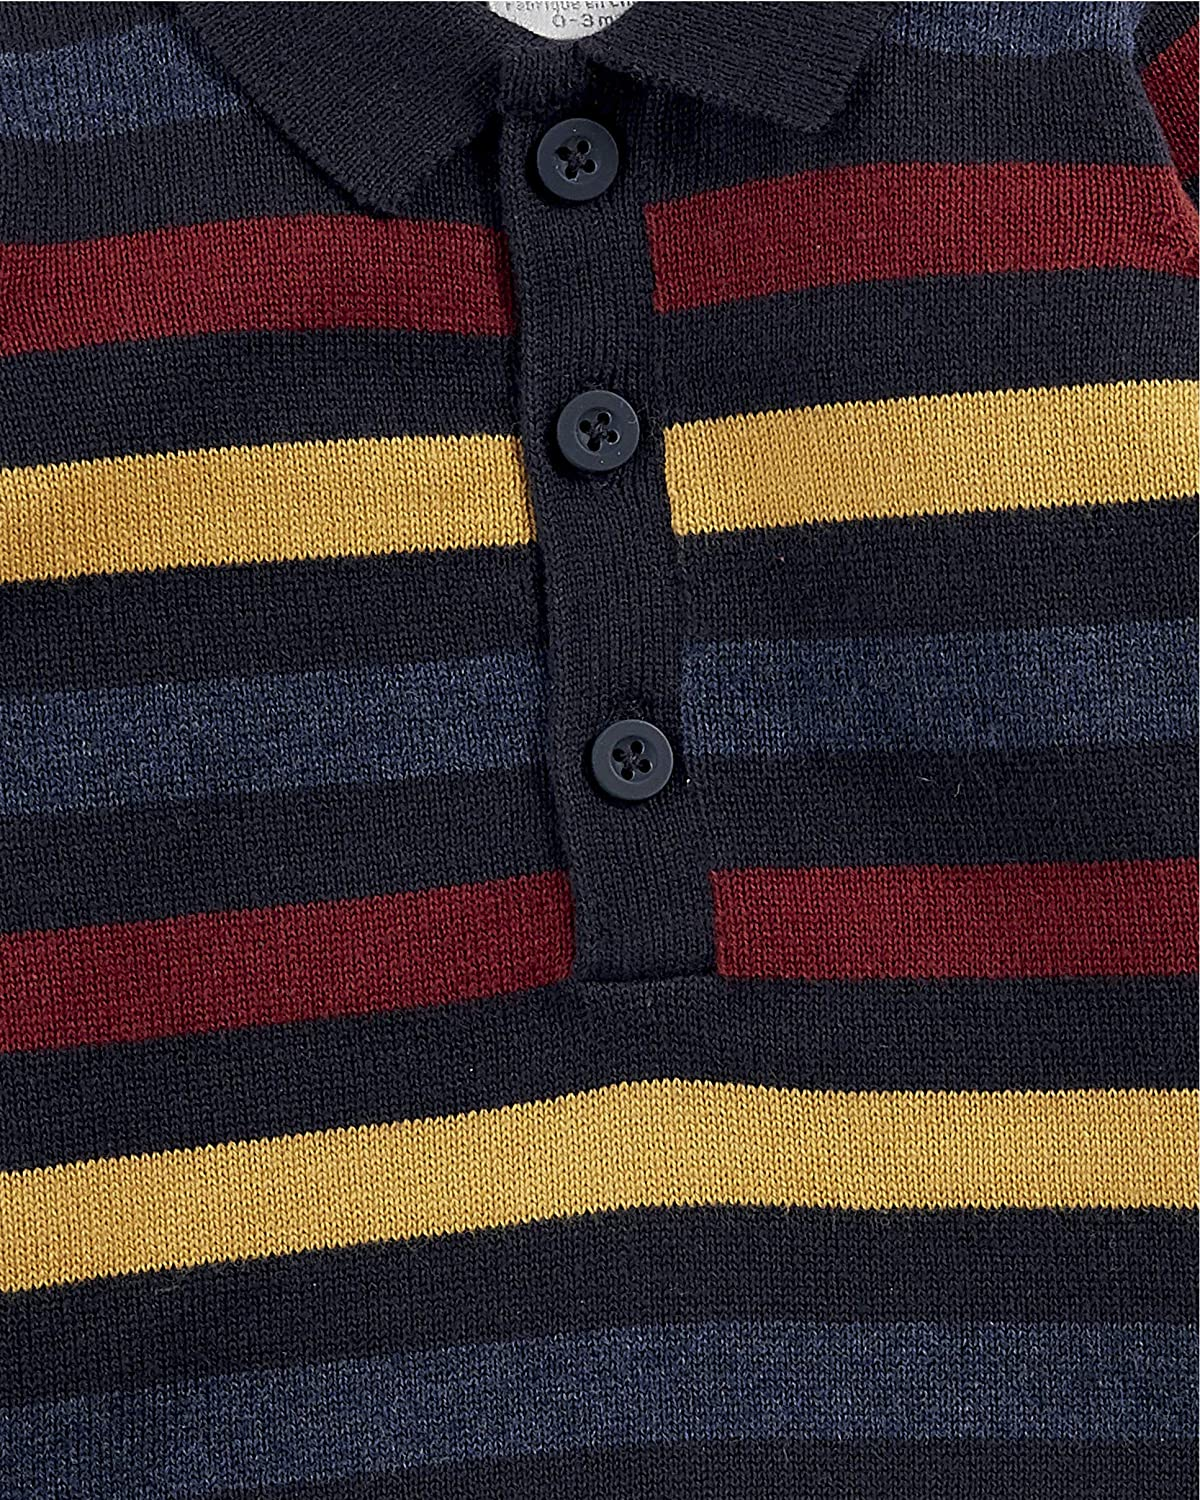 Mamas & Papas Striped Knit Polo Bebés: Amazon.es: Ropa y accesorios